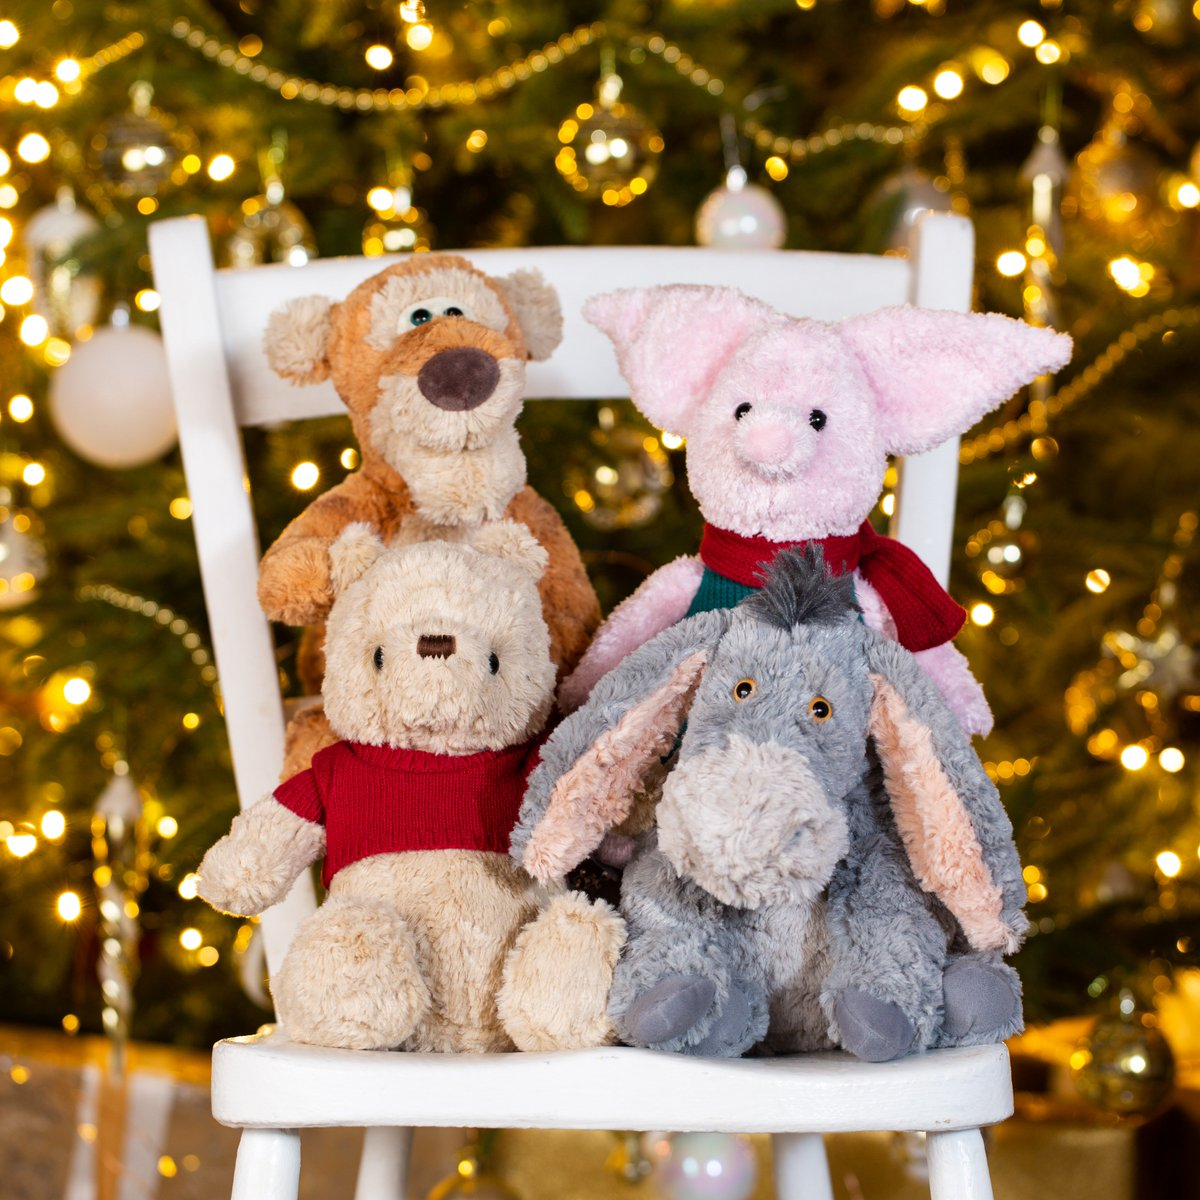 It's beginning to look a lot like Christmas! Our Christopher Robin Winnie the Pooh plush will be BACK IN STOCK very soon! Keep your eyes on @amazon to order in time for the big day. P.S did you know the #ChristopherRobin DVD release is next week too? How exciting! #disneylove<br>http://pic.twitter.com/lK5pE1Mt4z